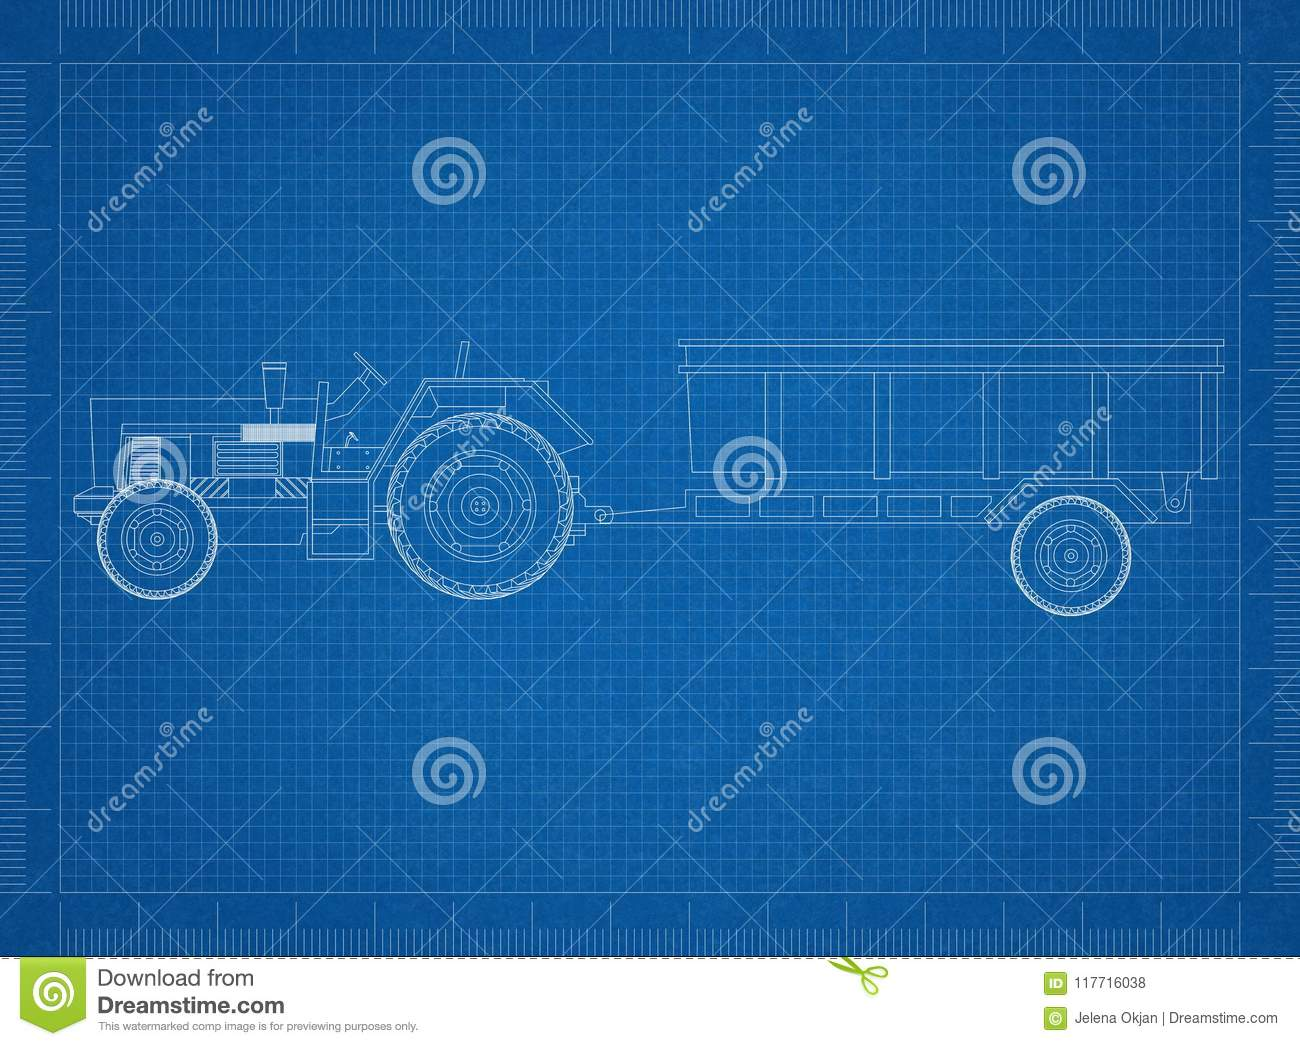 Tractor with trailer blueprint stock illustration illustration of download comp malvernweather Gallery